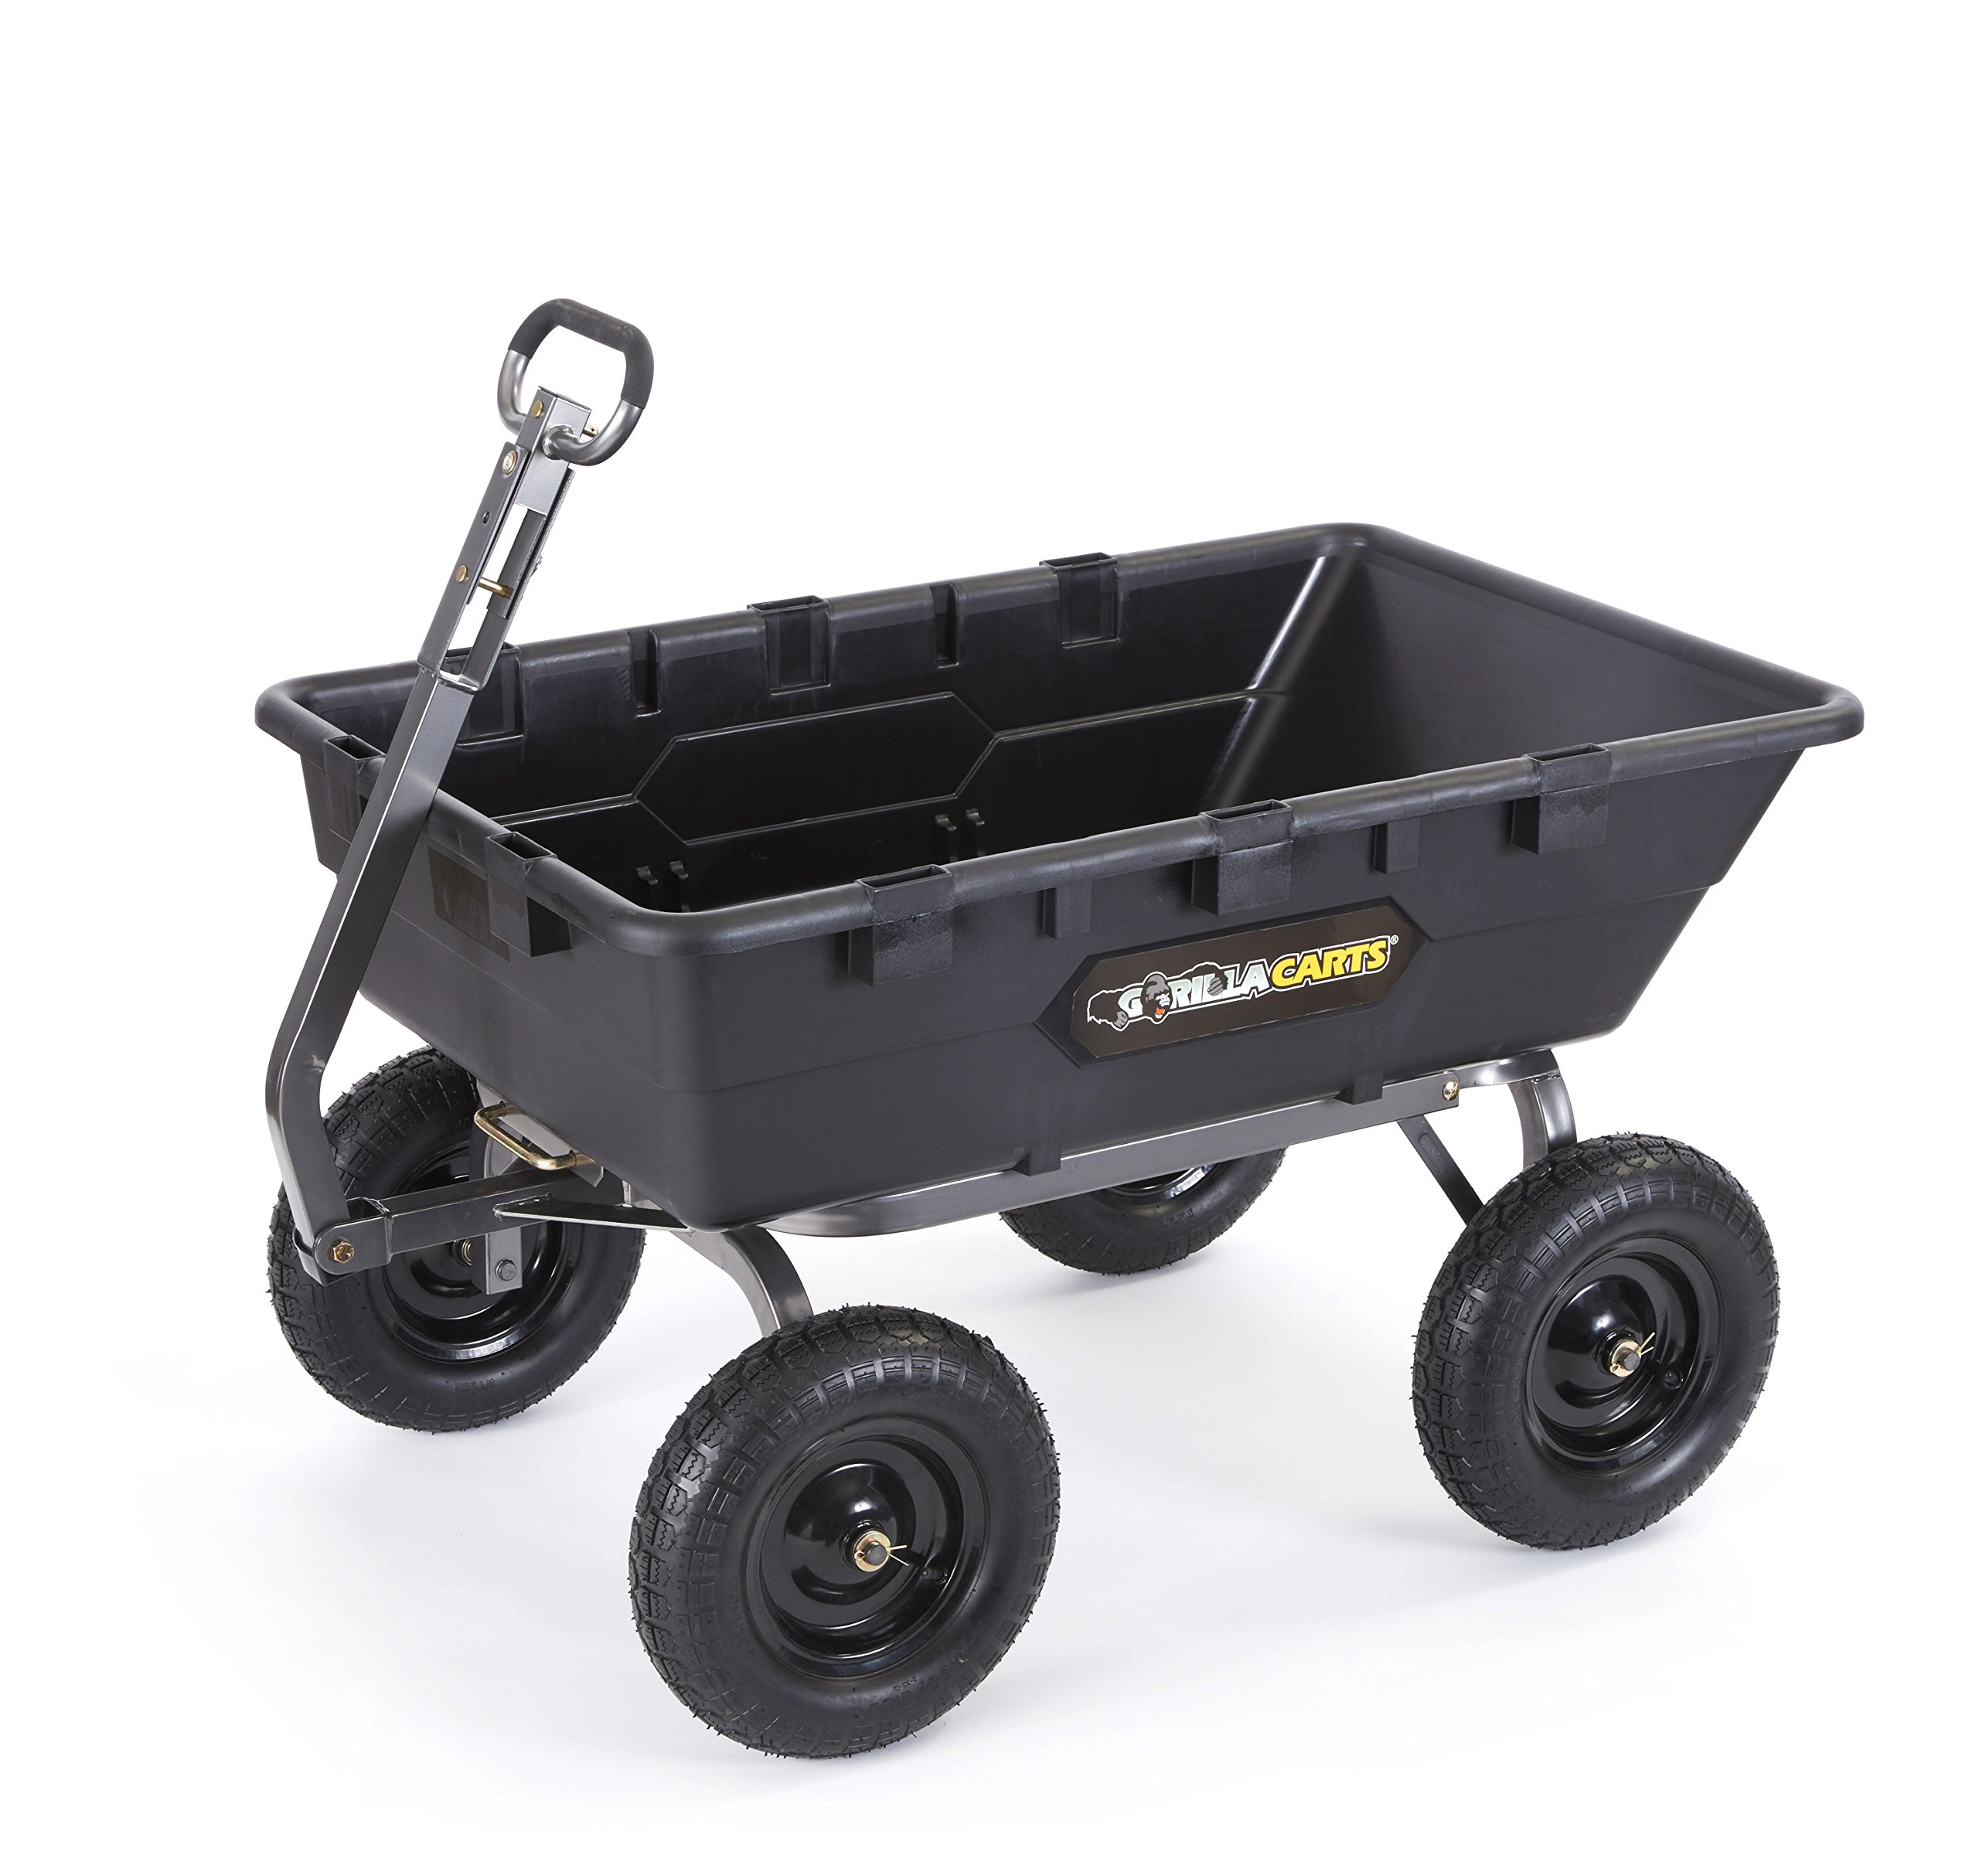 Gorilla Carts GOR10-16 Super Heavy Duty Poly Dump Cart, 1,500-pound Capacity, Black by Gorilla Carts